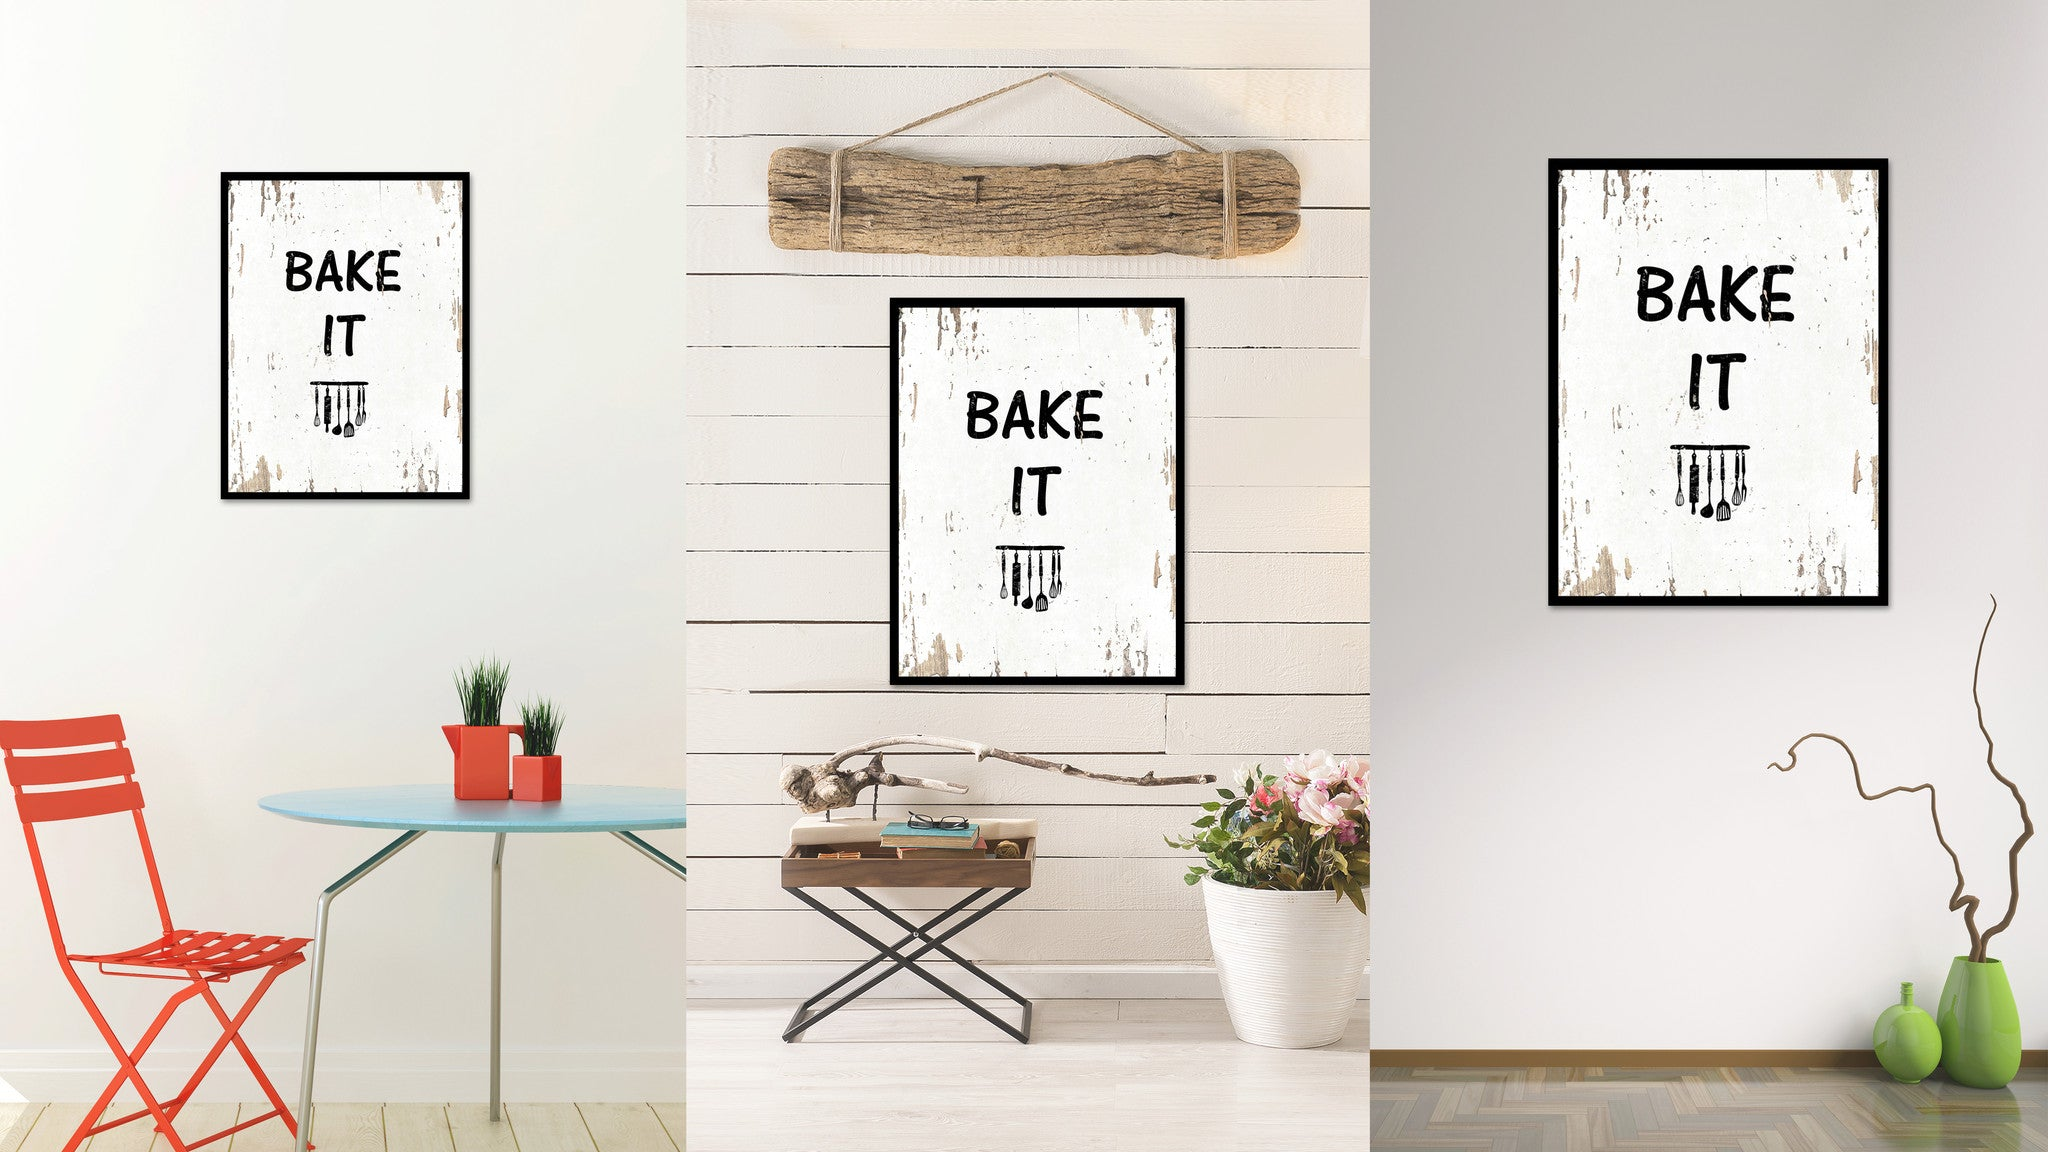 Bake It Quote Saying Gift Ideas Home Decor Wall Art 111453